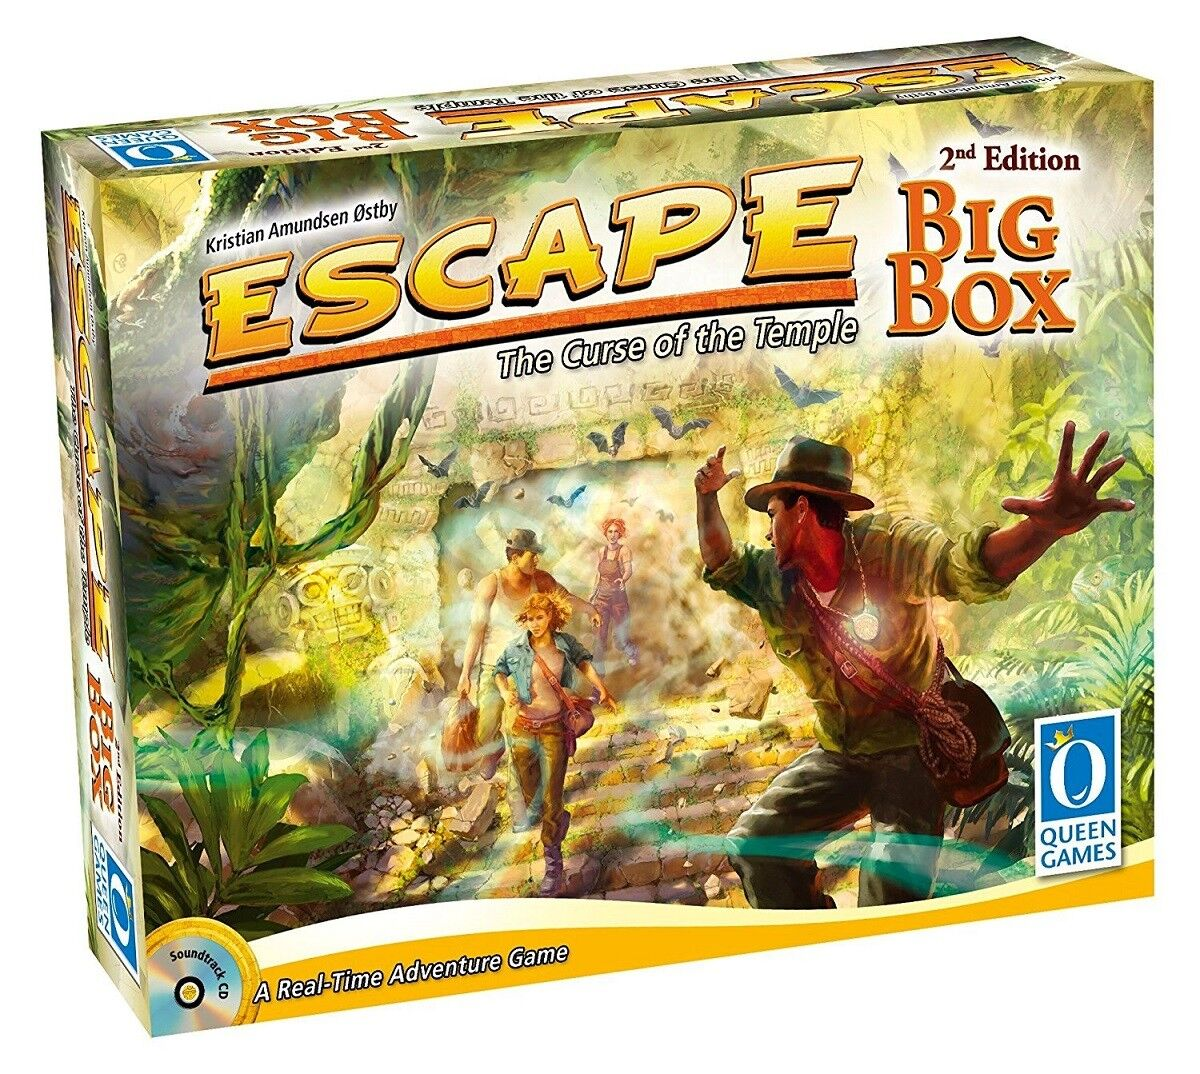 ESCAPE   DER FLUCH DES TEMPELS - BIG BOX BOX BOX 2nd Edition - Queen Games 10353 - NEU 291d82